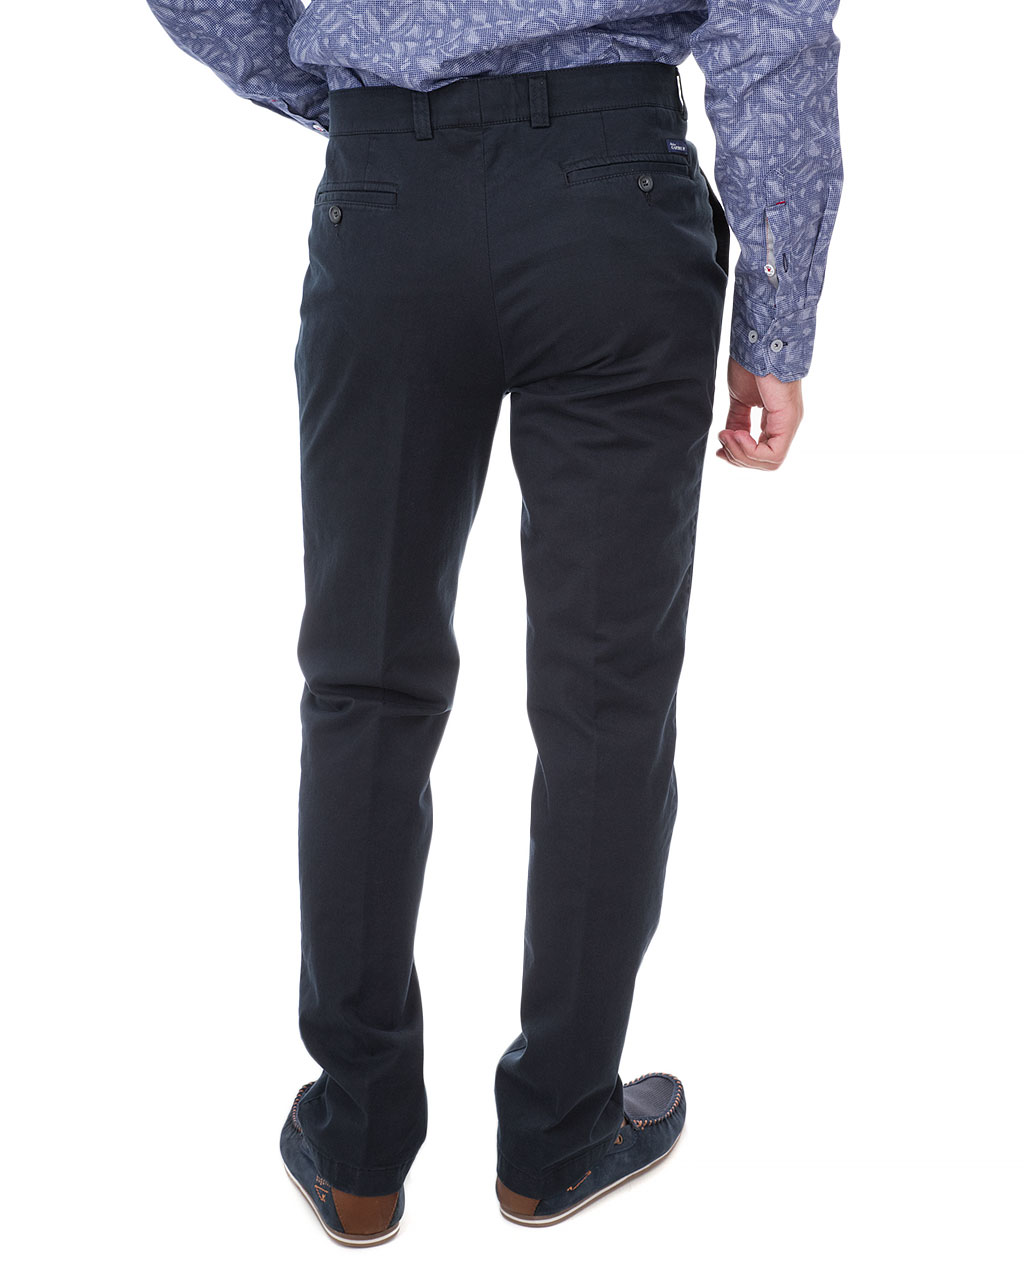 Men's trousers 410401-068/6             (4)